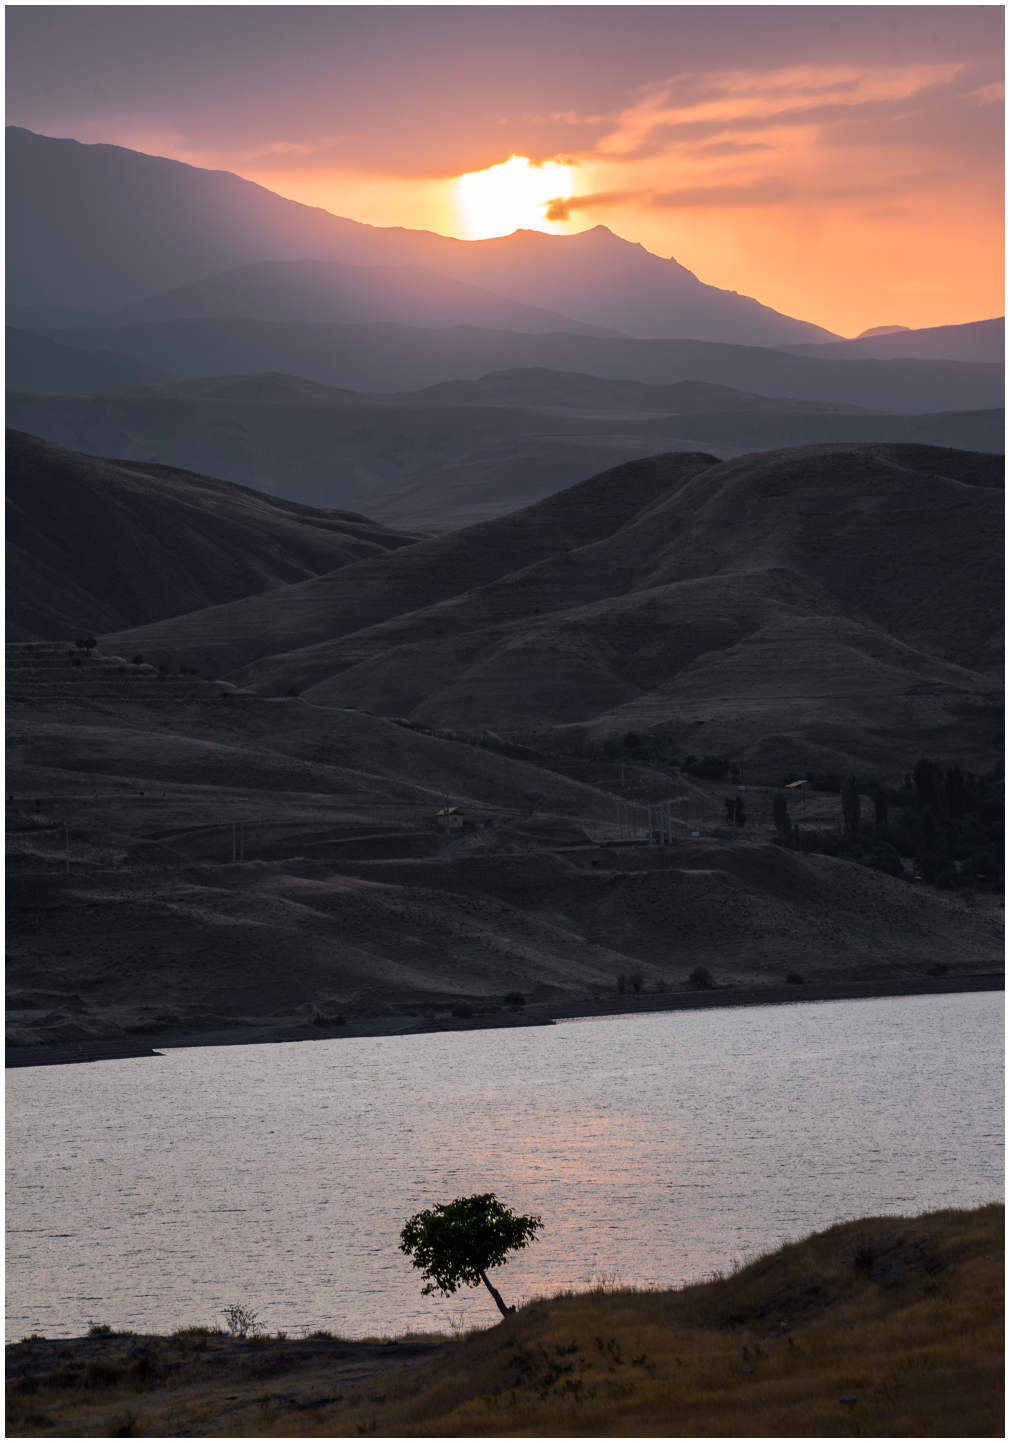 single_tree parviz_falahatkar Taleghan_dam iran